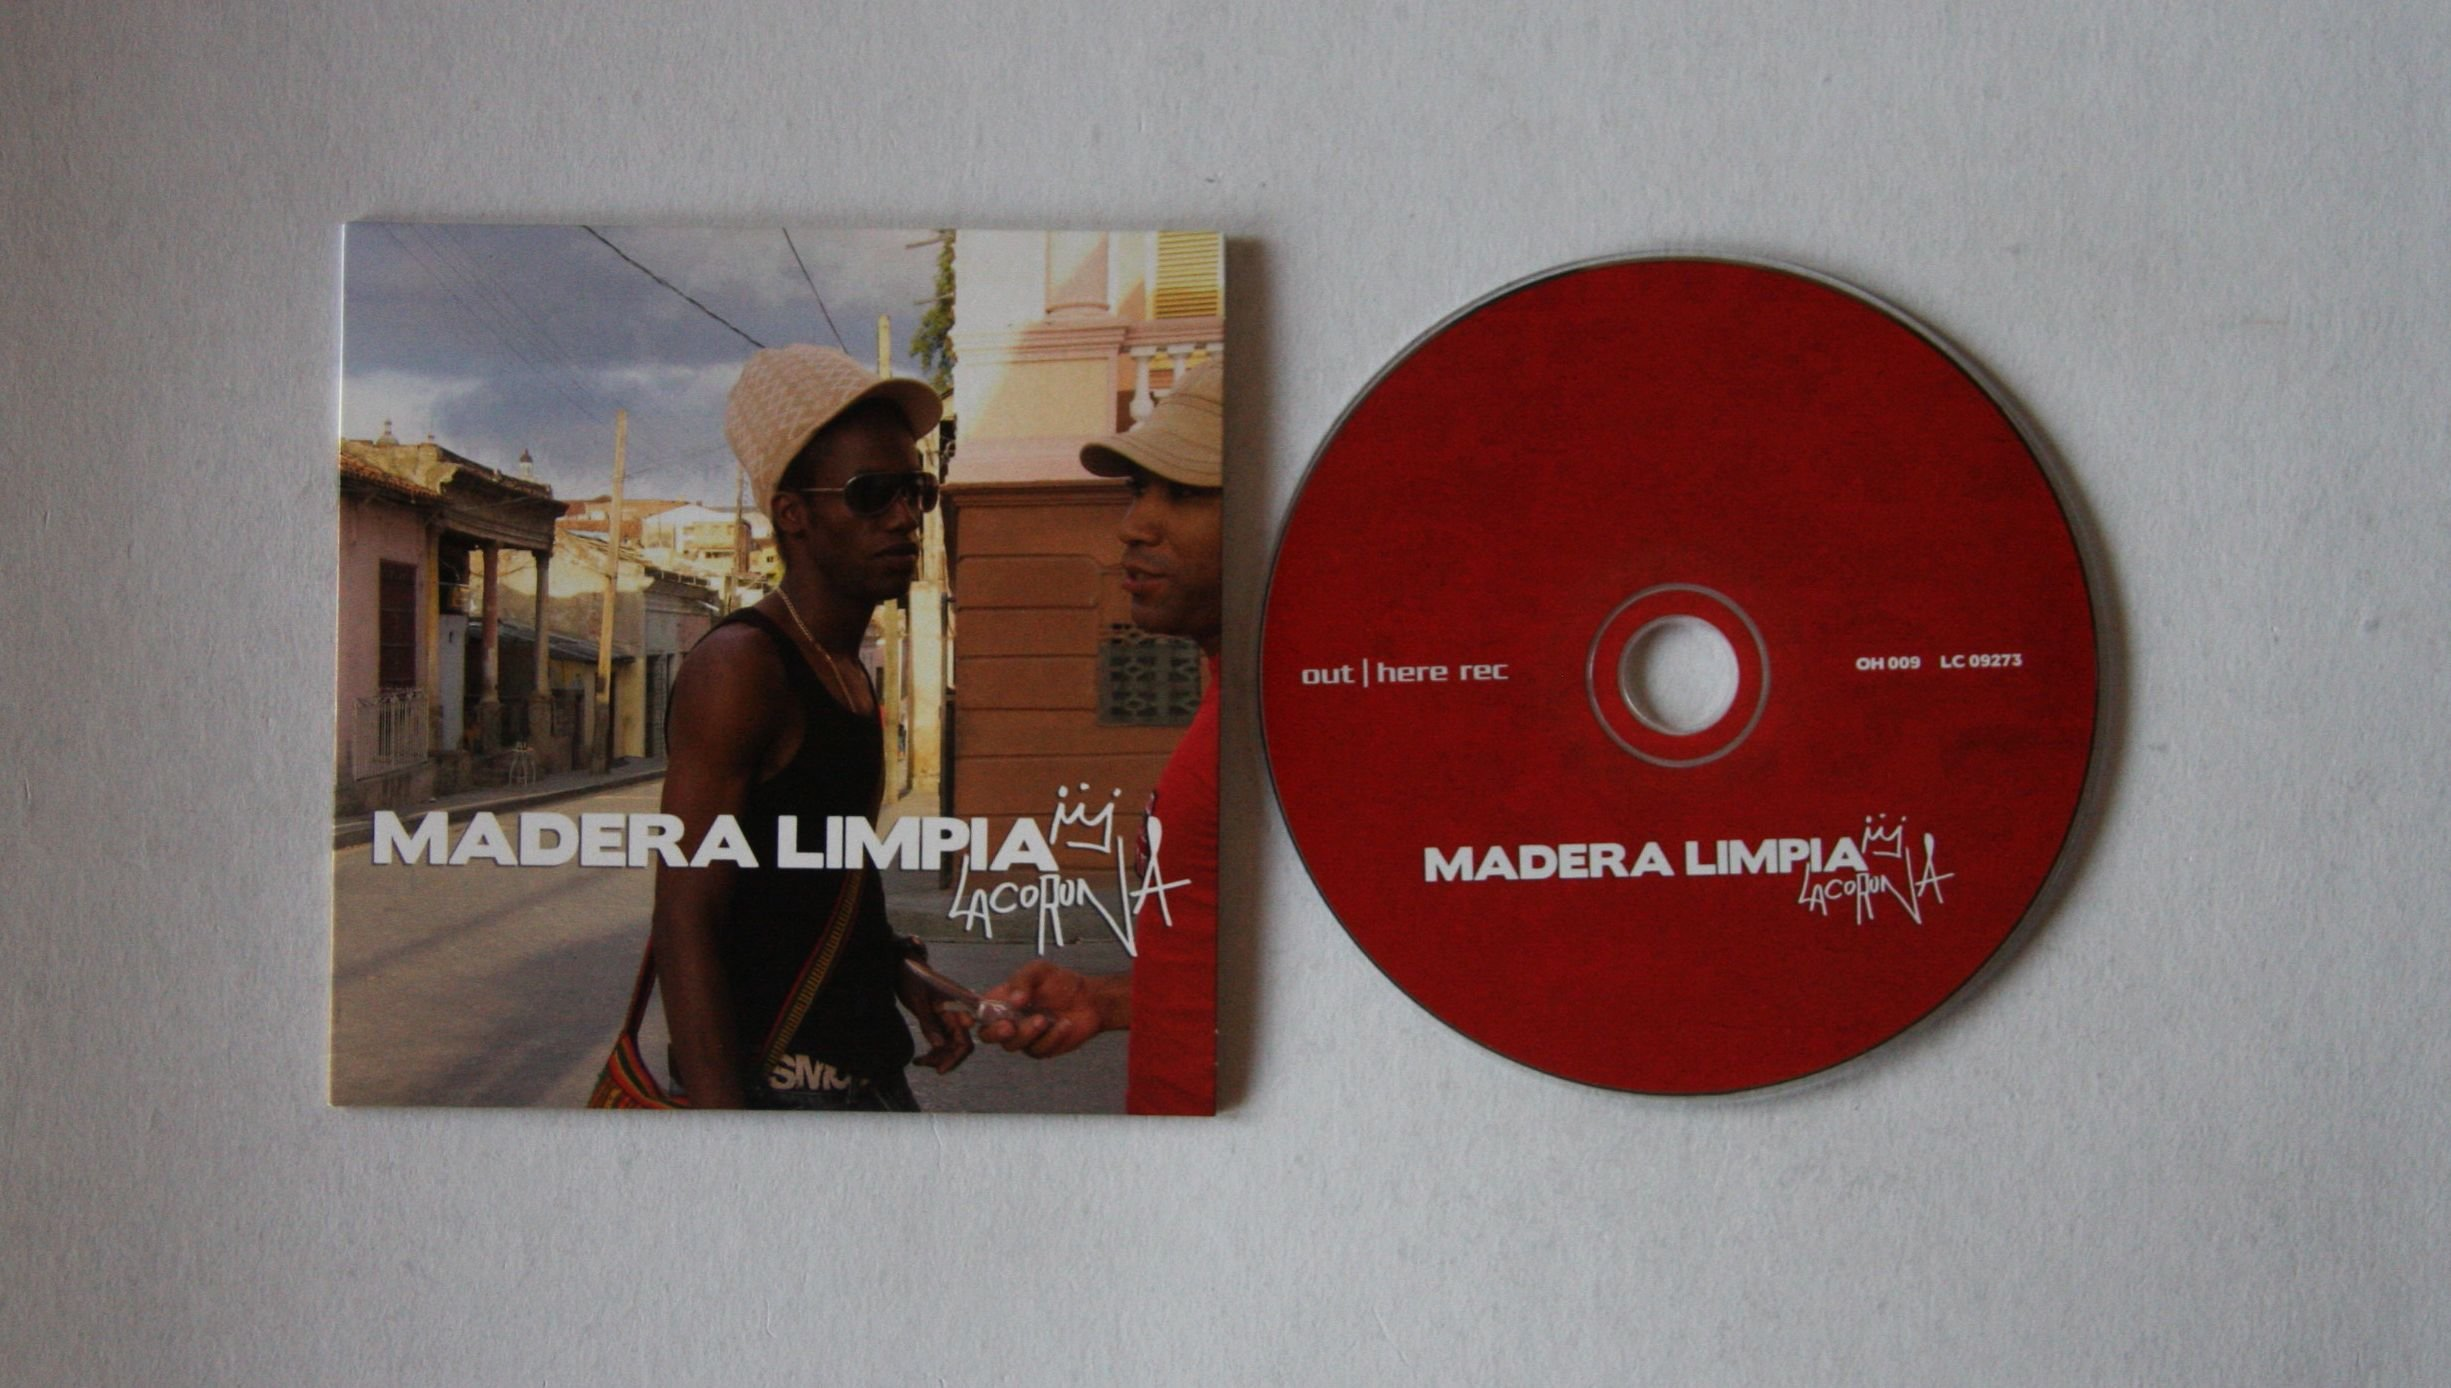 la madera latin singles Billboard top latin songs year-end chart 1989 and received a gold certification in latin america and spain for the latin single from the 2000s.